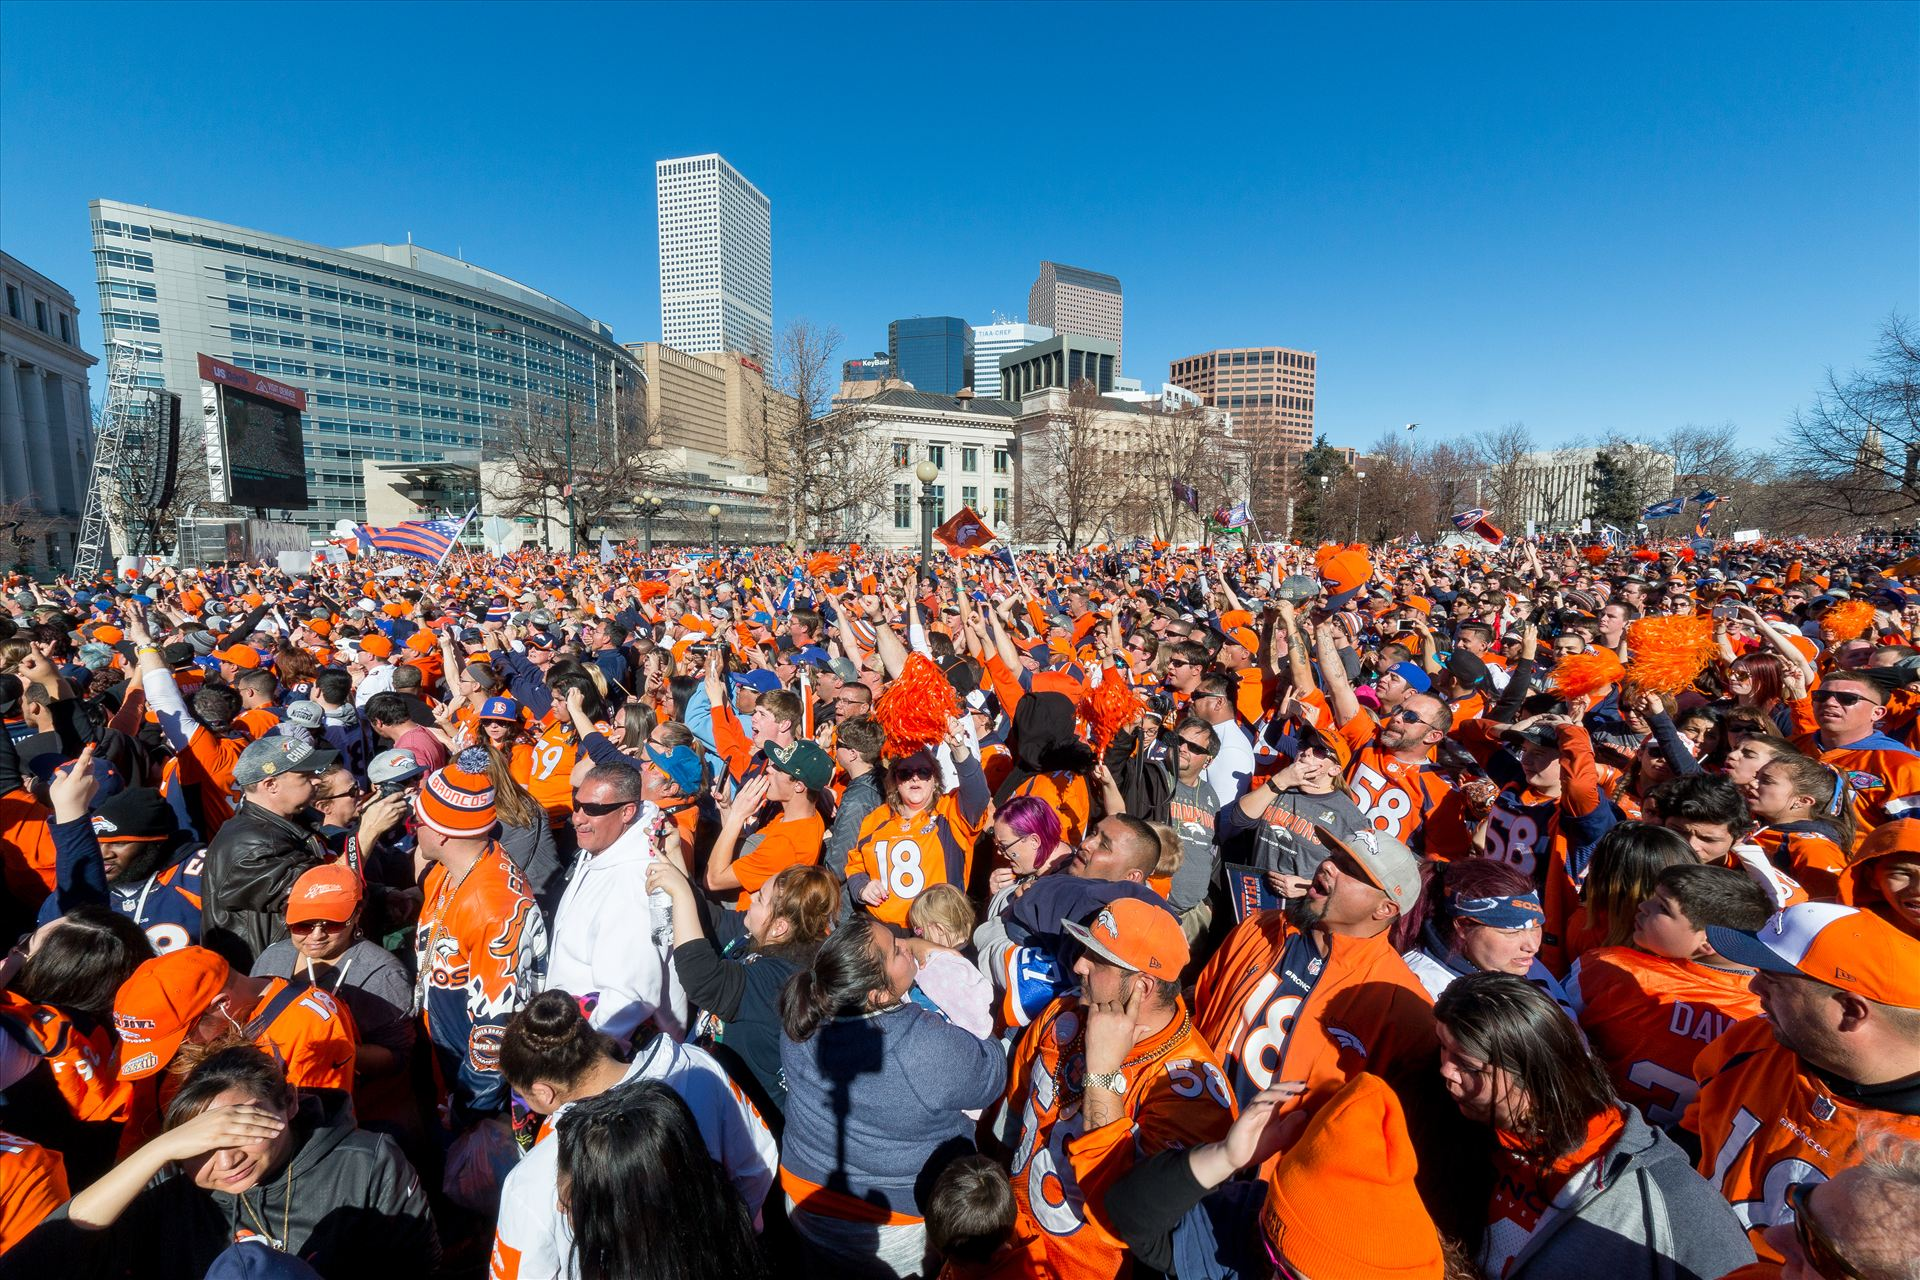 Broncos Fans 2 - The best fans in the world descend on Civic Center Park in Denver Colorado for the Broncos Superbowl victory celebration. by D Scott Smith